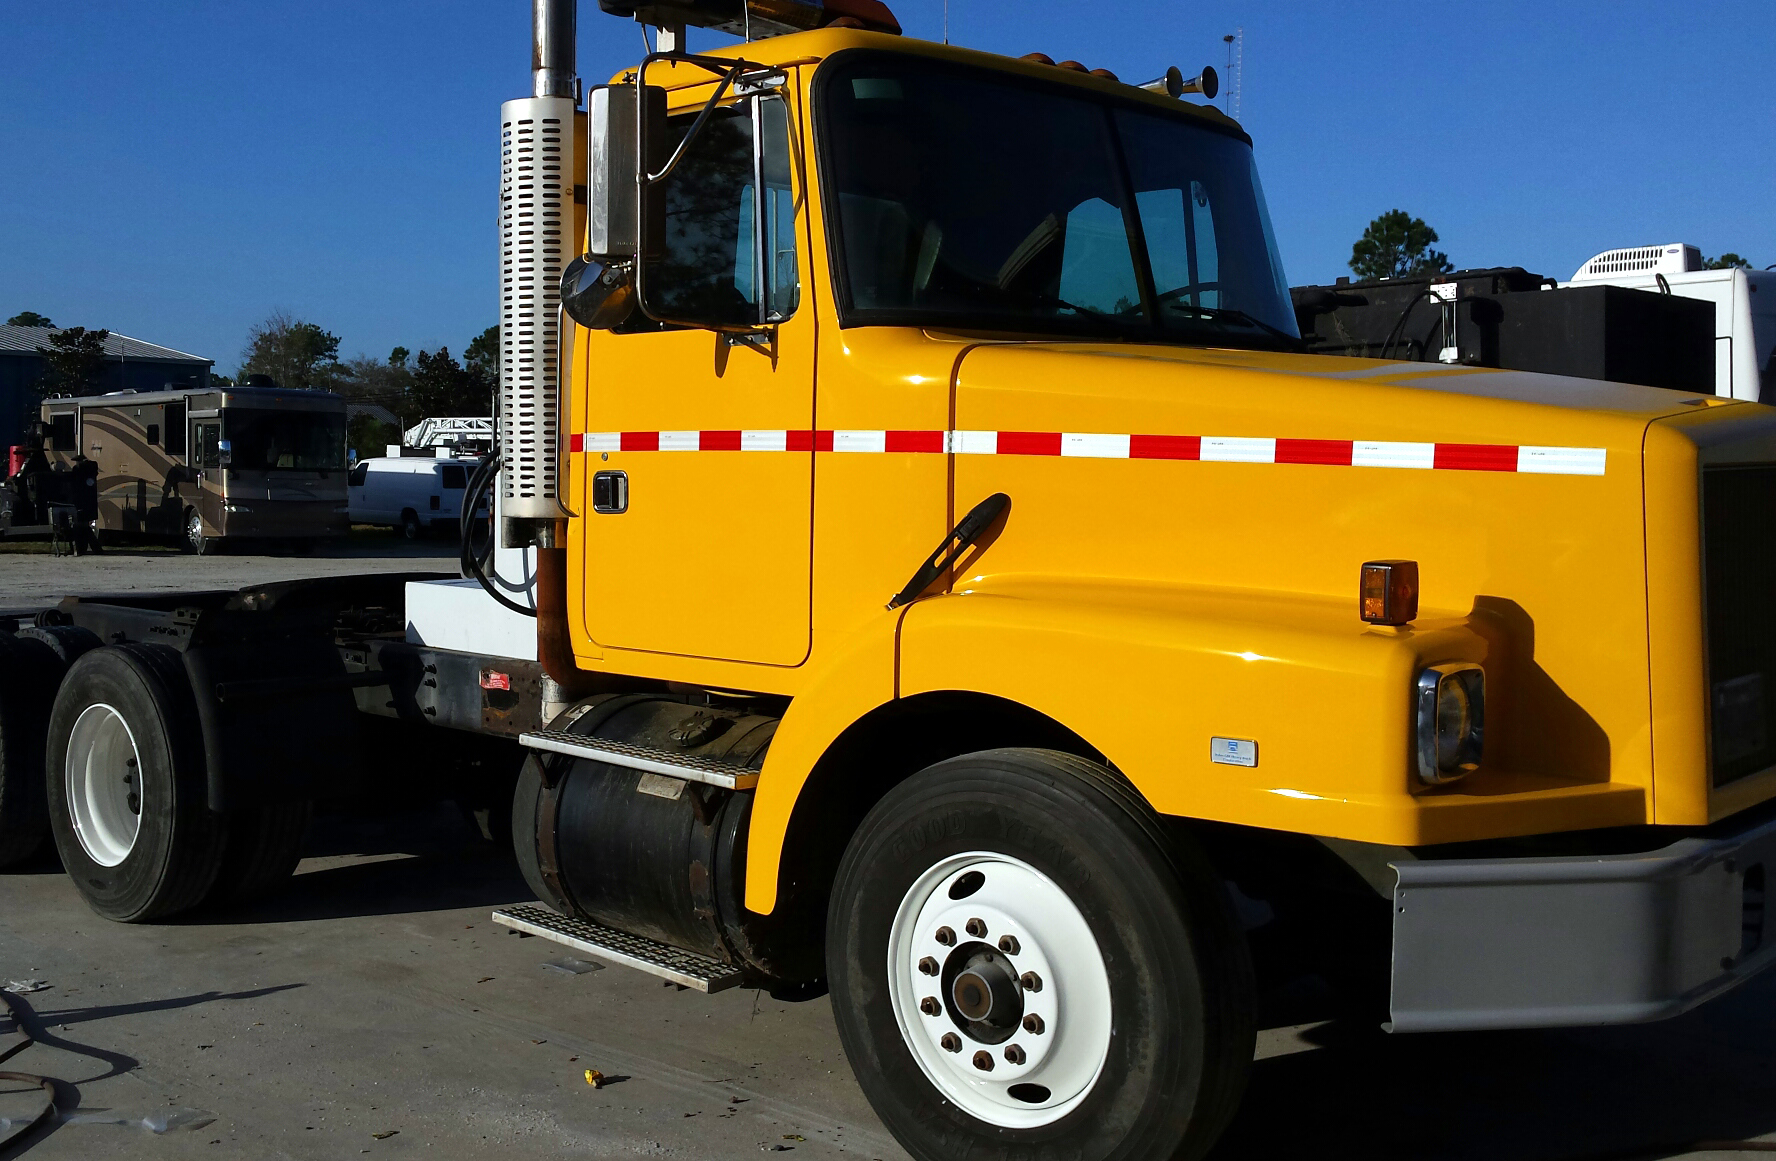 Florida Department of Transportation Truck After Repainting. We are able to save the state of Florida thousands of dollars by repairing and reconditioning their existing vehicles rather than purchasing new vehicles.